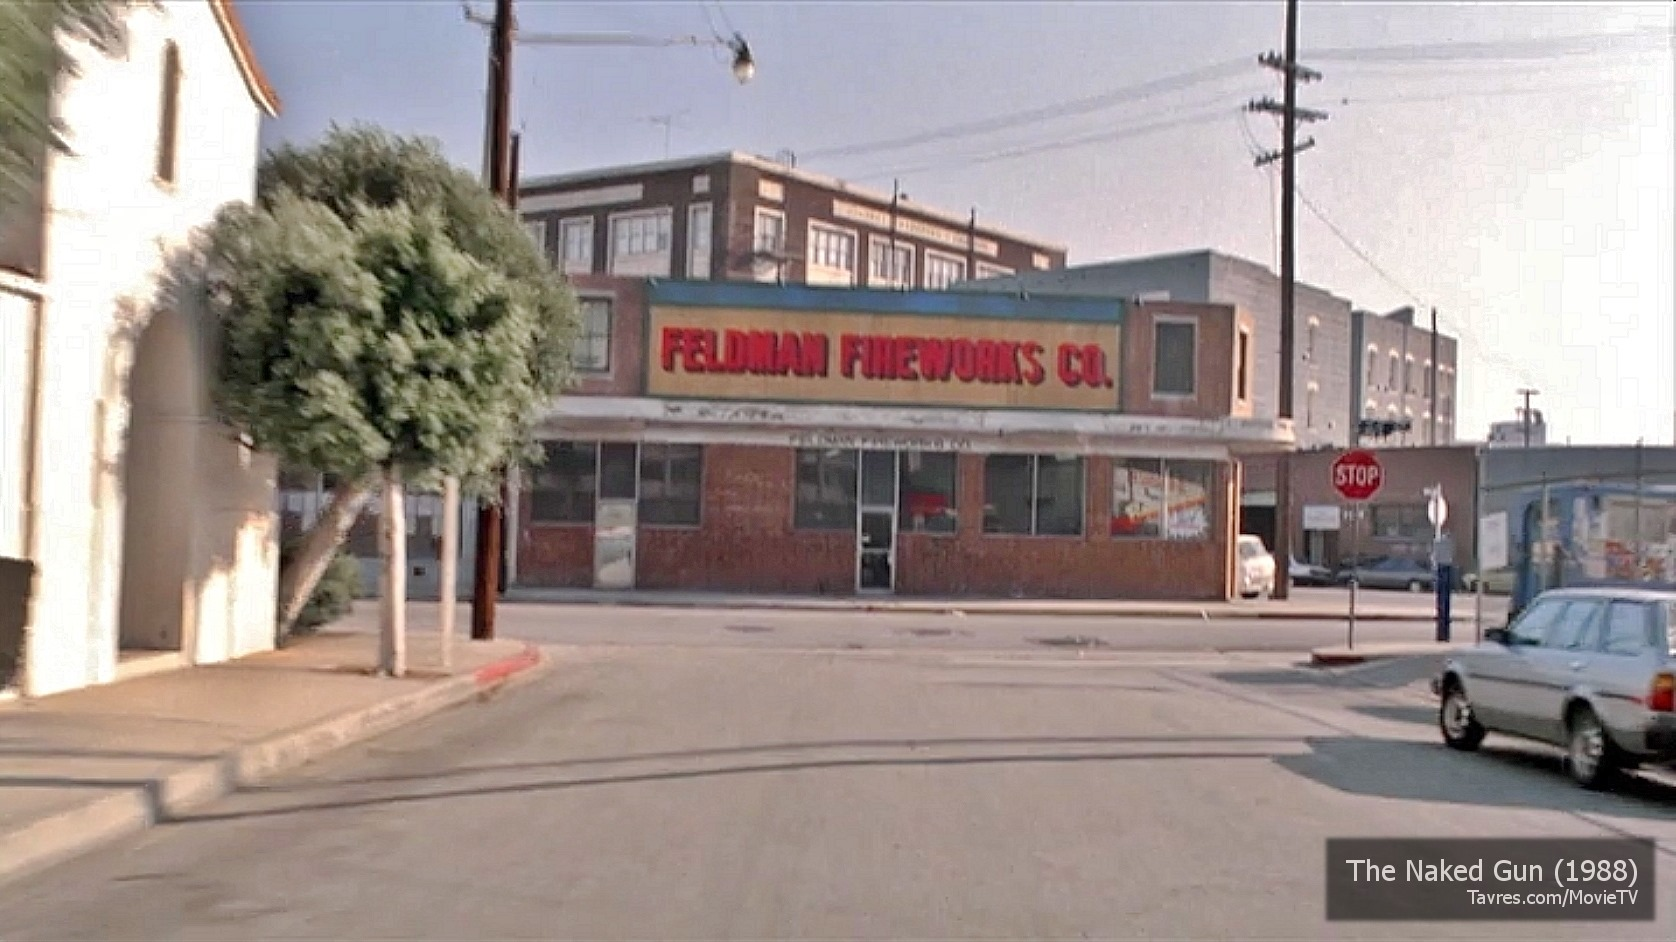 The Naked Gun – Feldman Fireworks Co